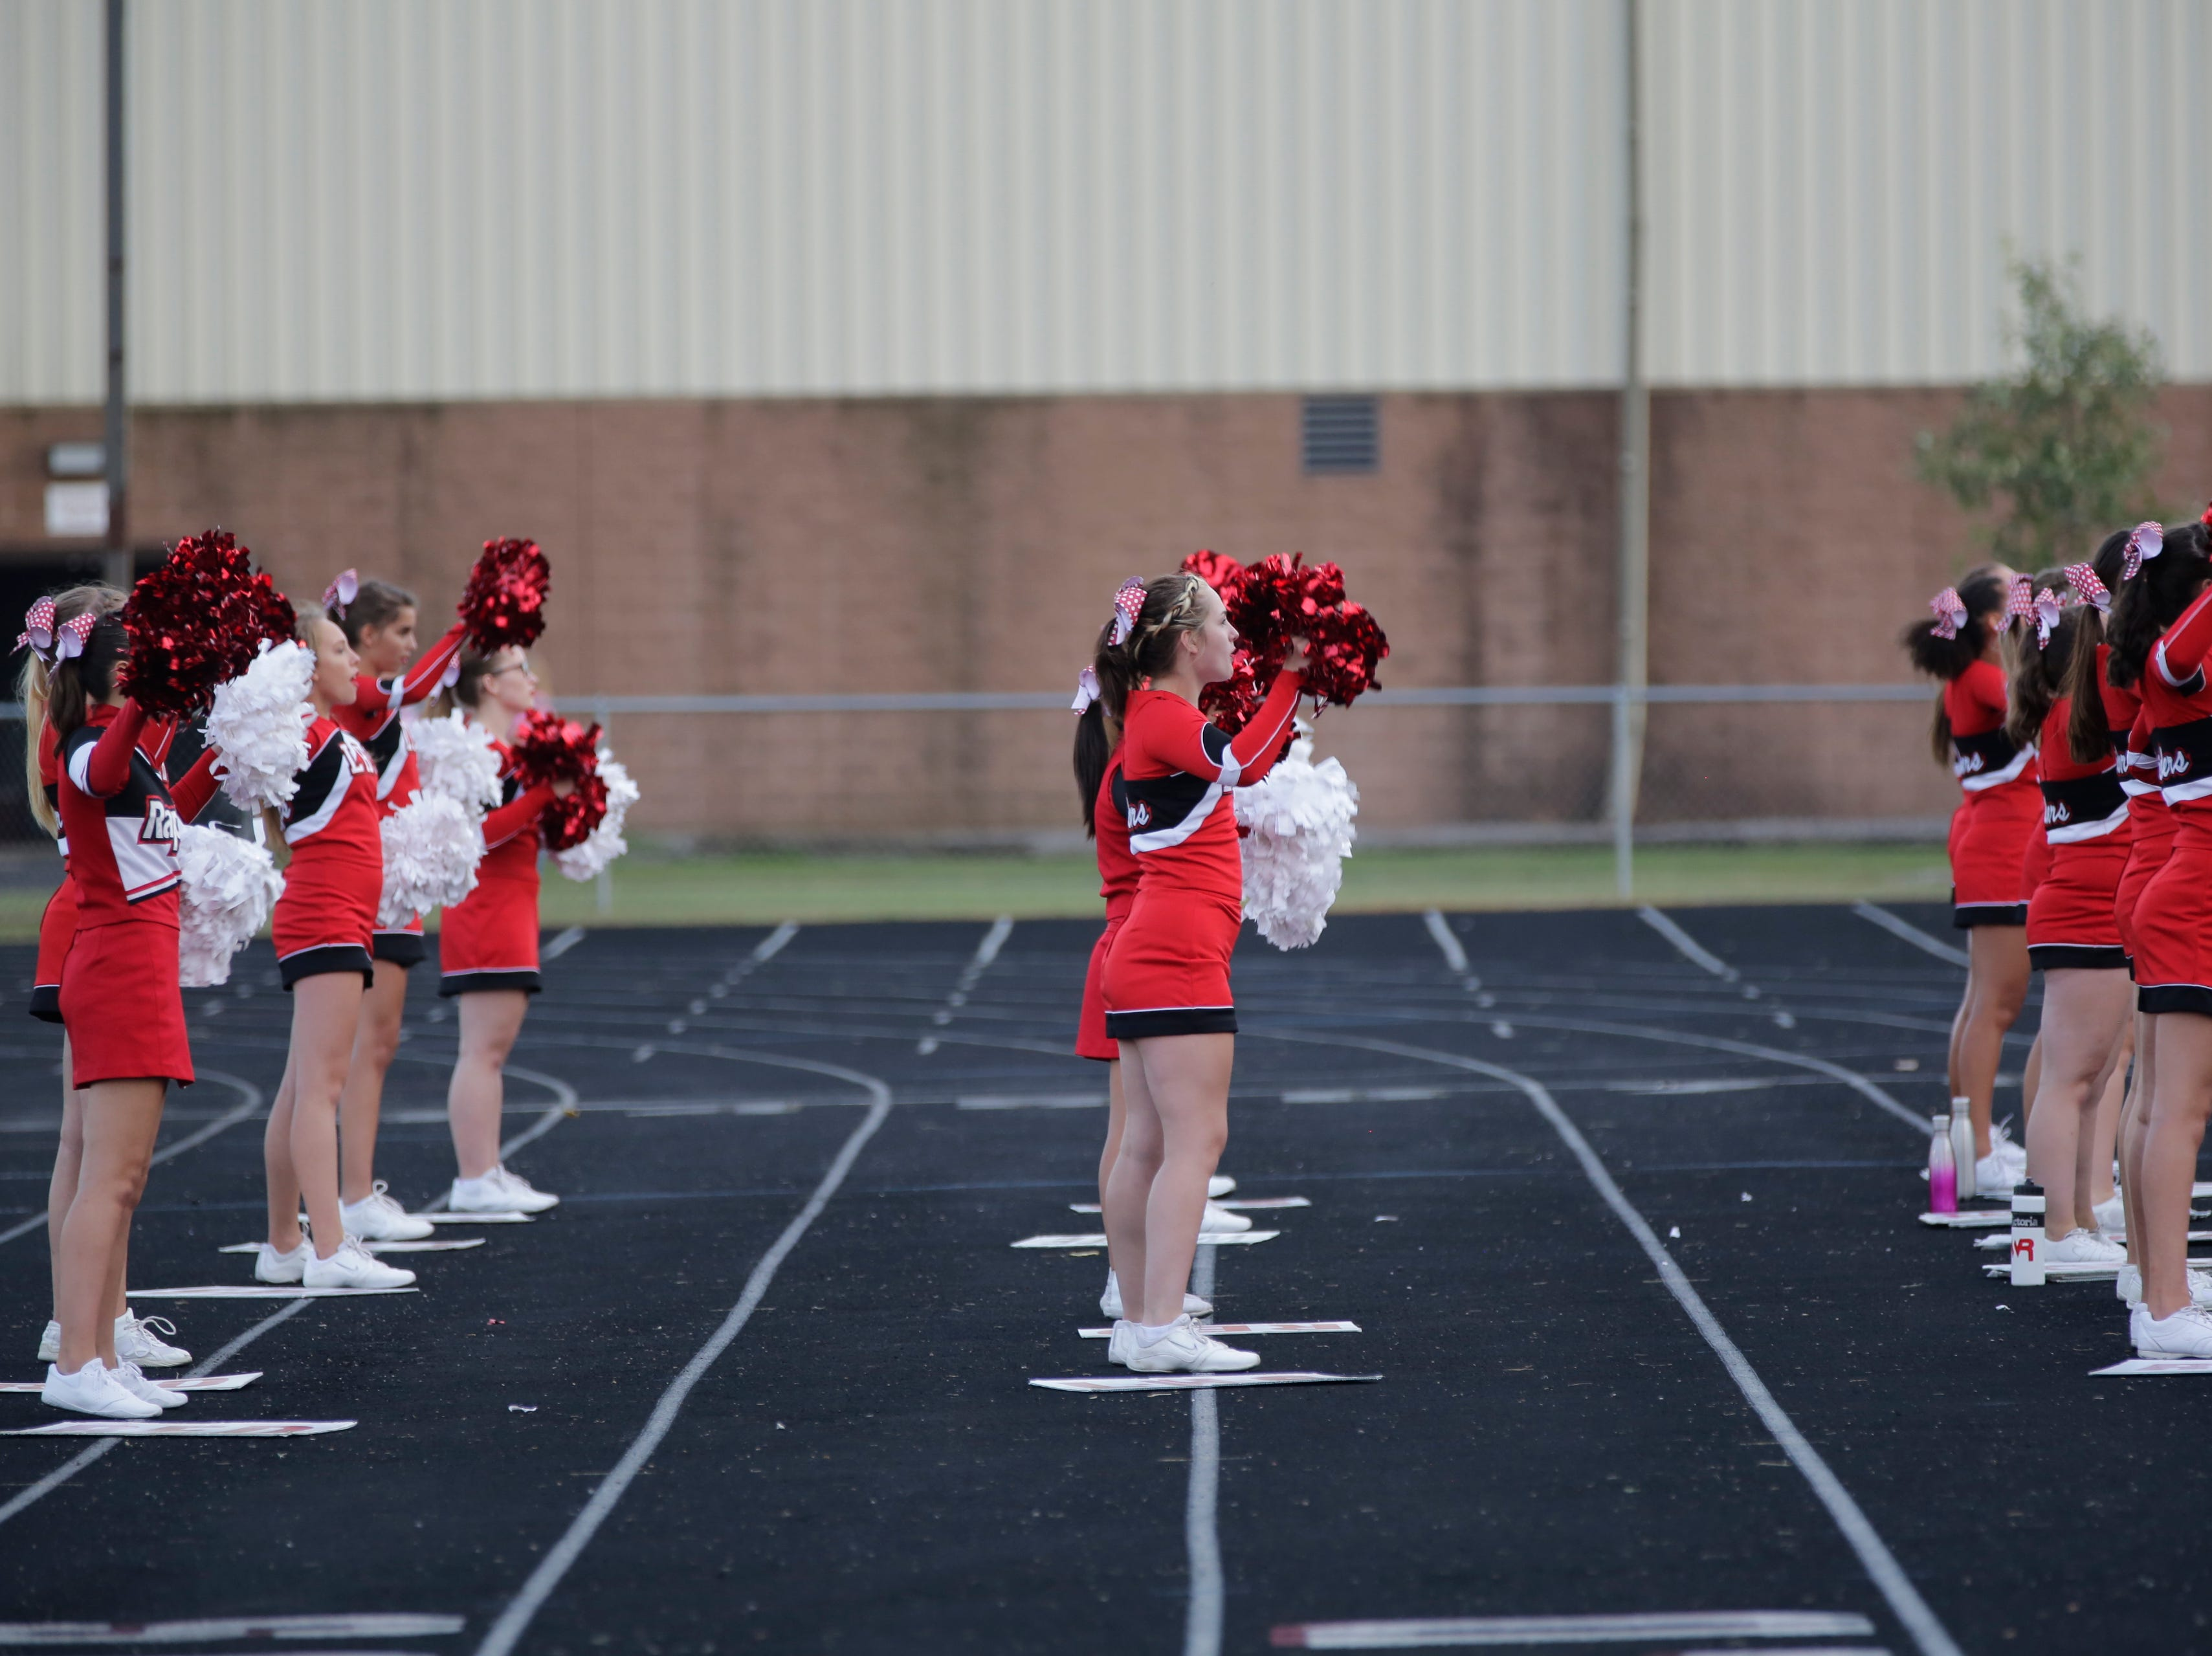 The Wisconsin Rapids cheerleaders lead a cheer during a game between Wisconsin Rapids and Kimberly at Wisconsin Rapids Lincoln High School Thursday, August 23, 2018.